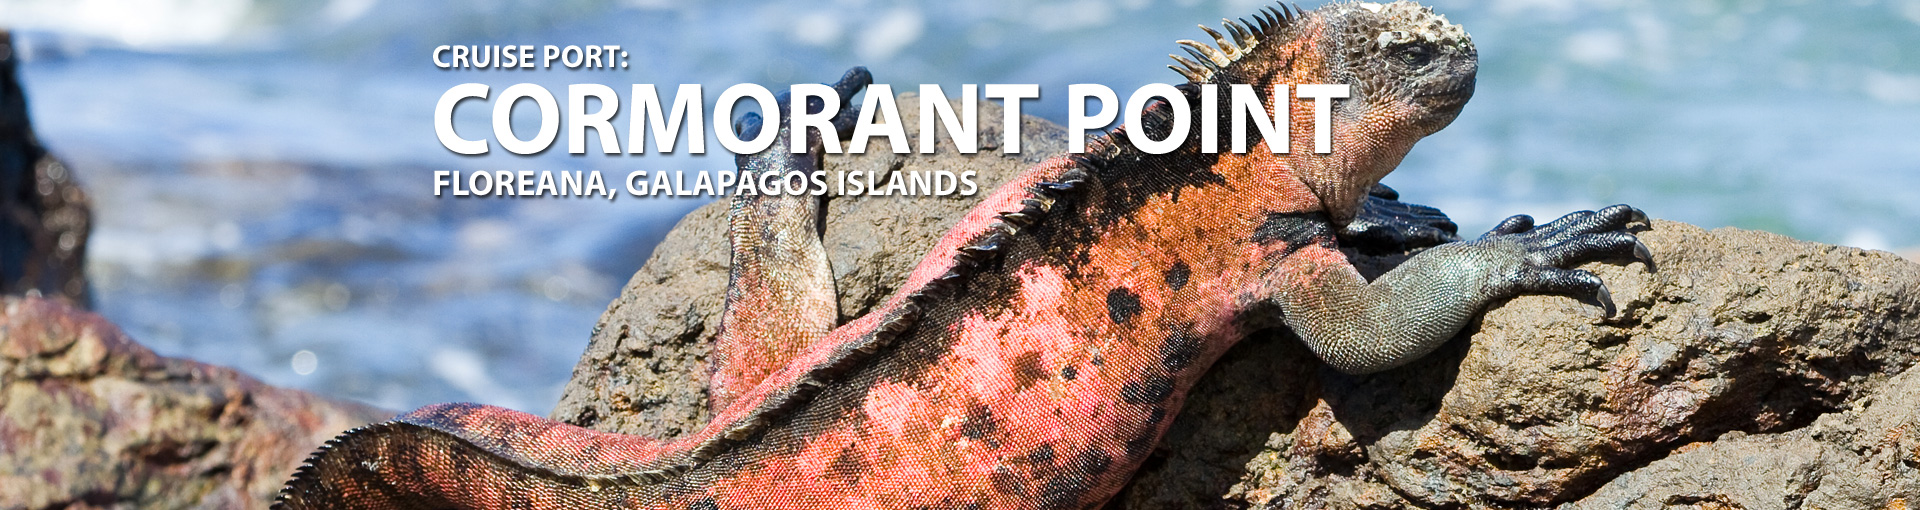 Cruises to Cormorant Point, Galapagos Islands